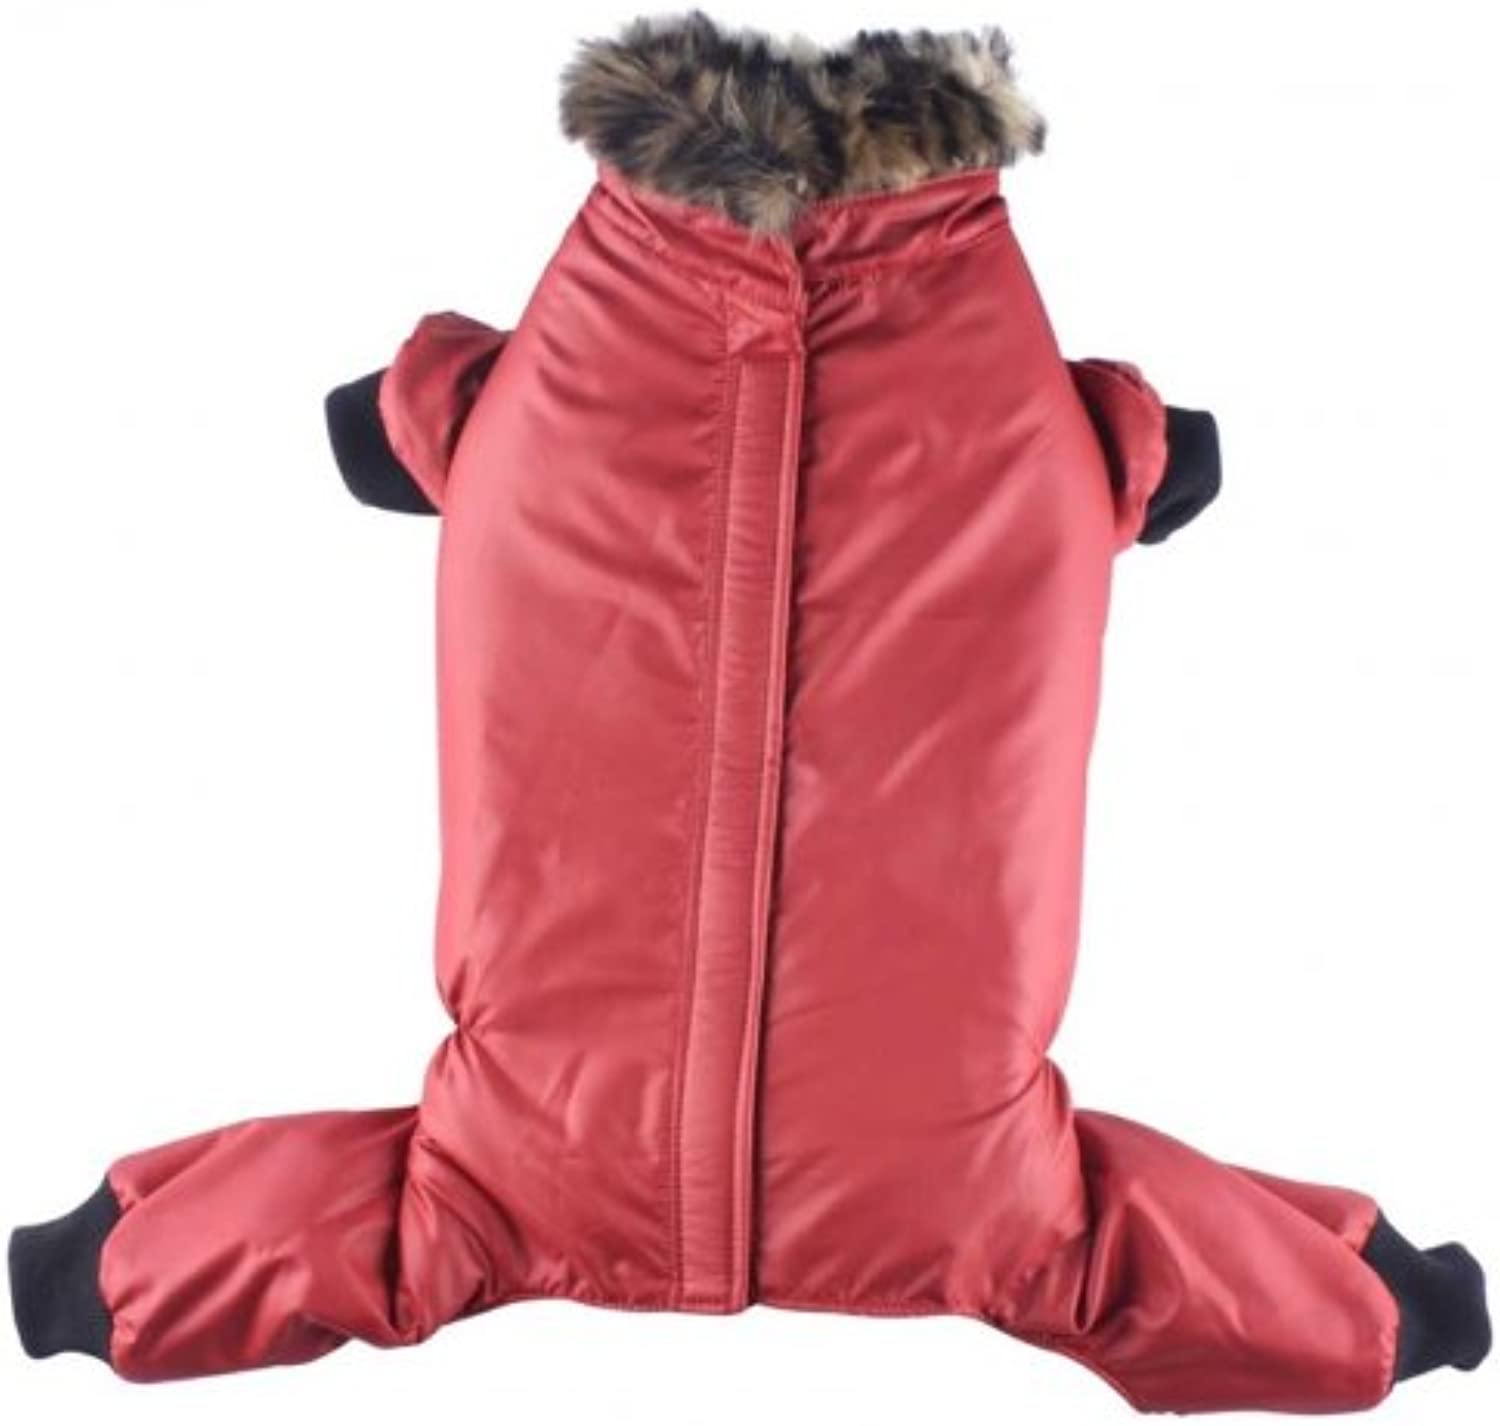 Doggydolly Red jacket 4 legs